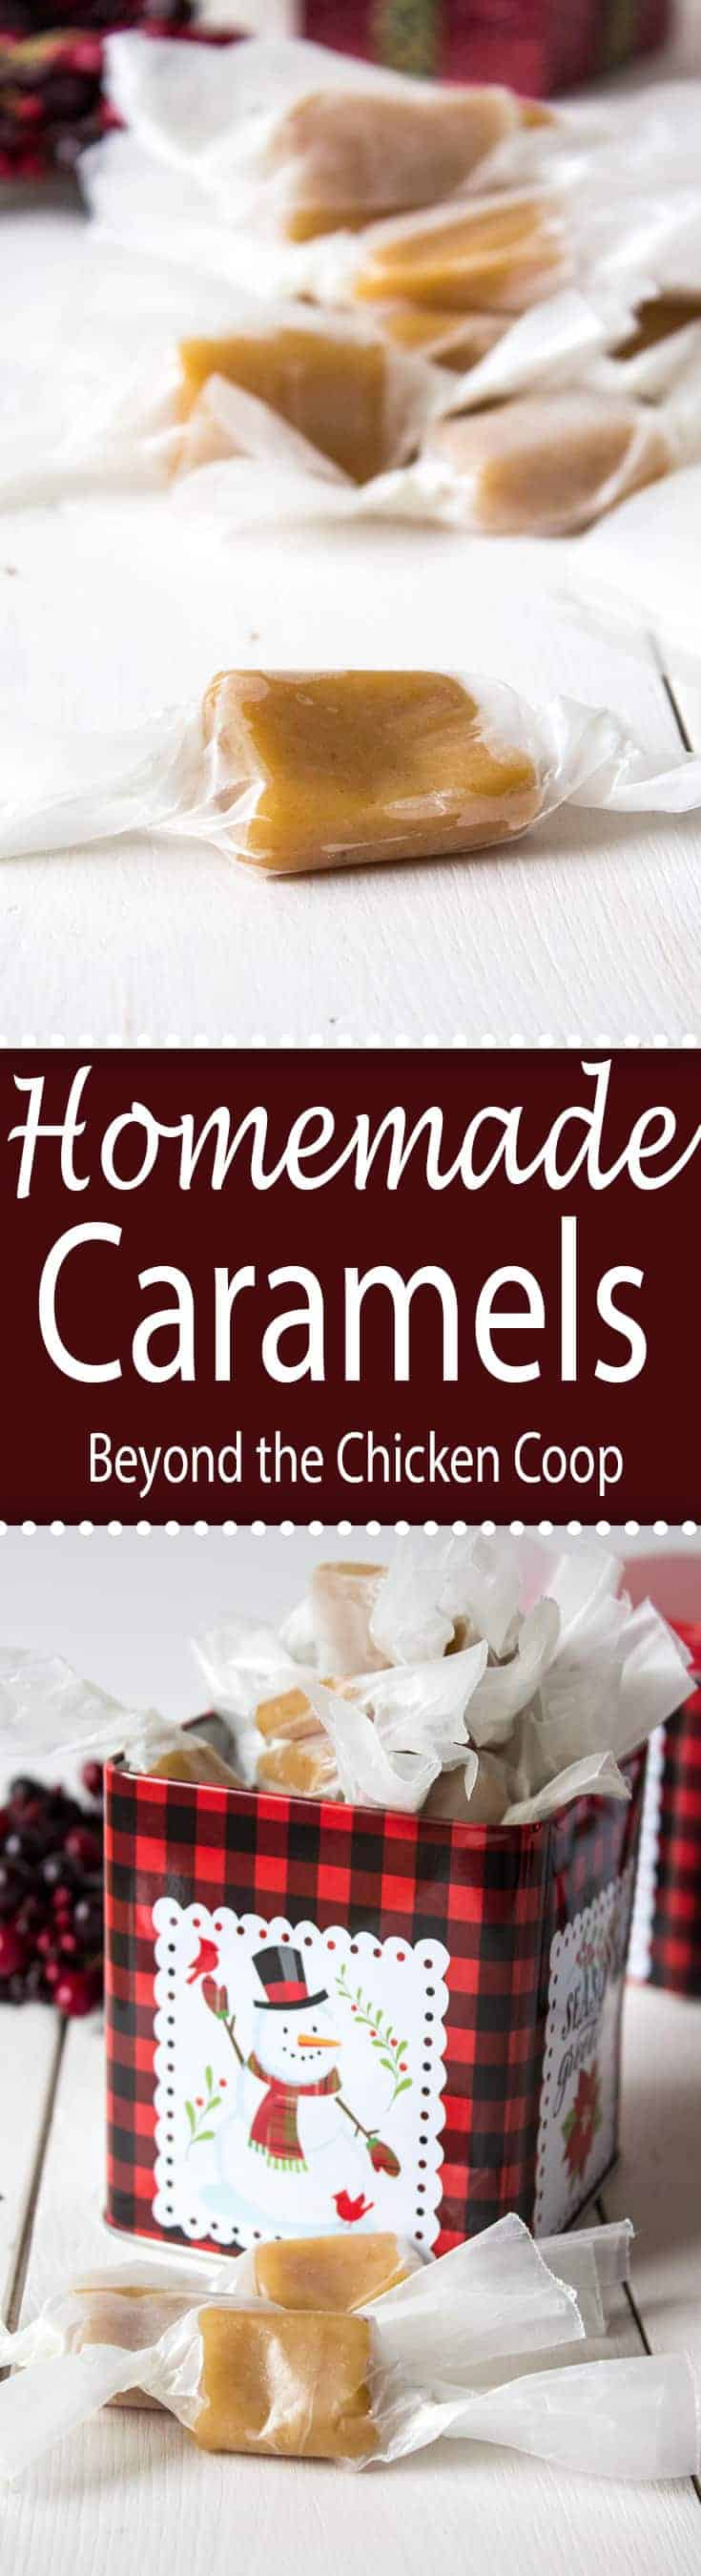 Soft and chewy homemade caramels make a perfect gift for the holidays. #caramels #holidays #candy